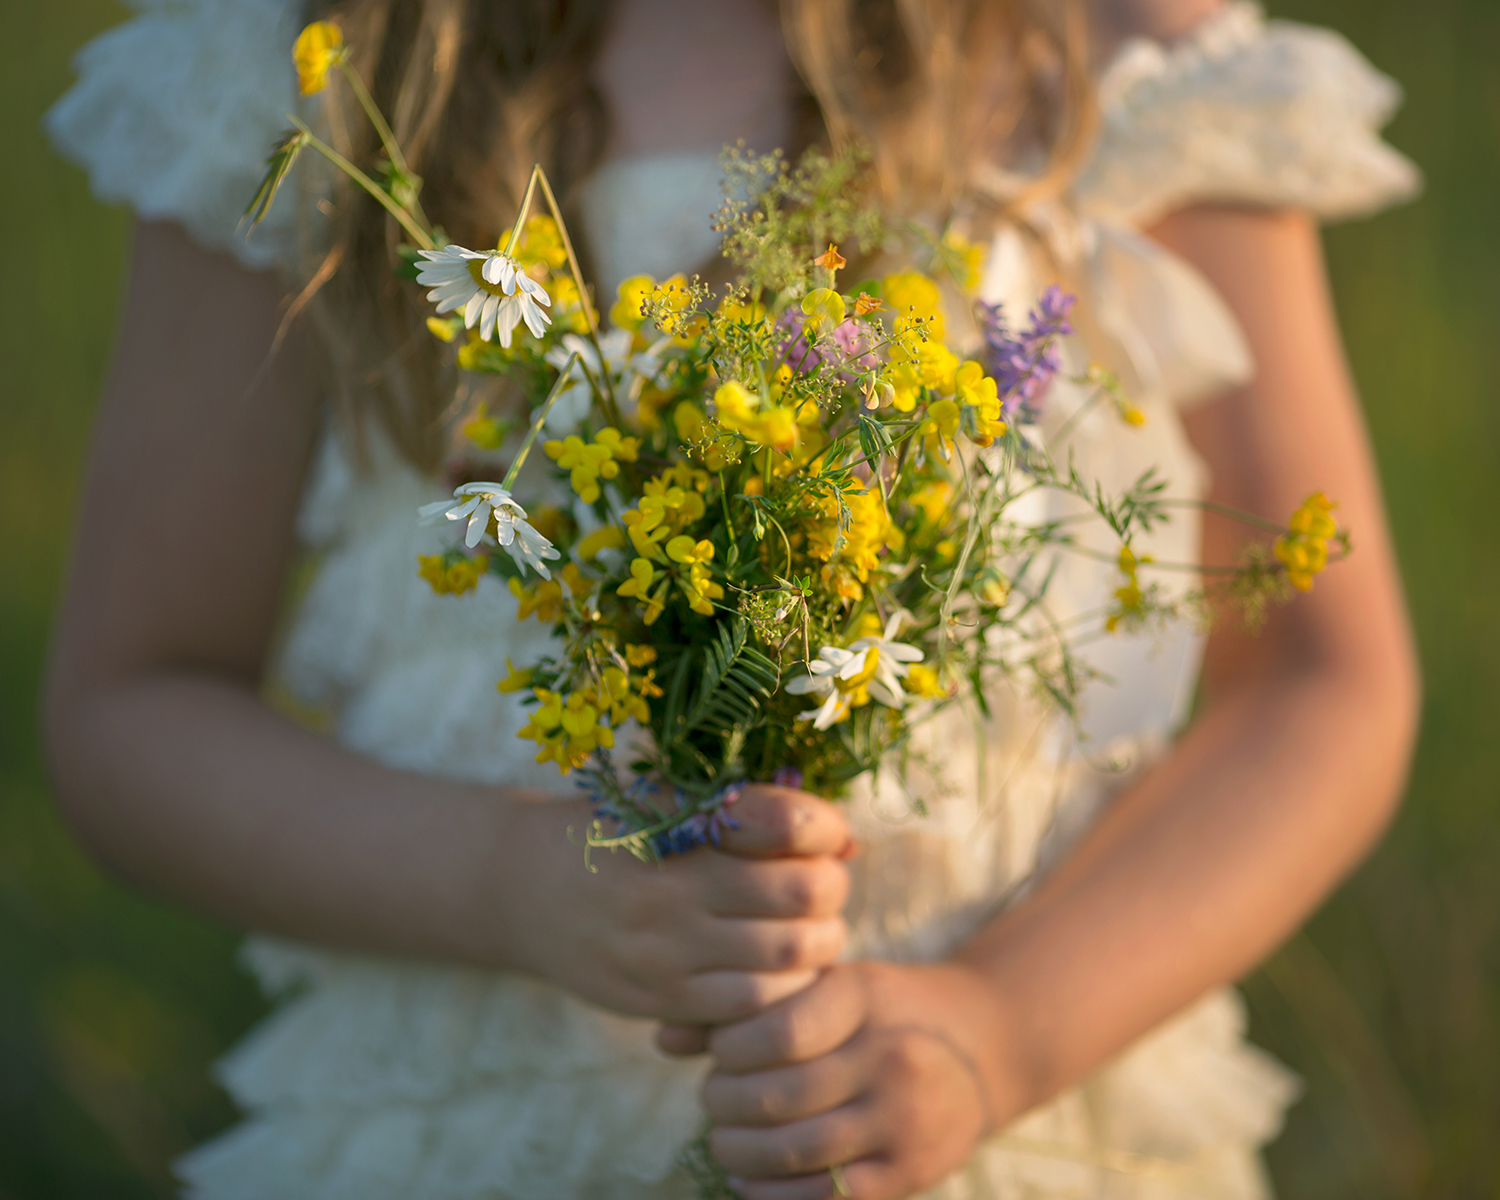 abby holds wildflowers sRGB.jpg